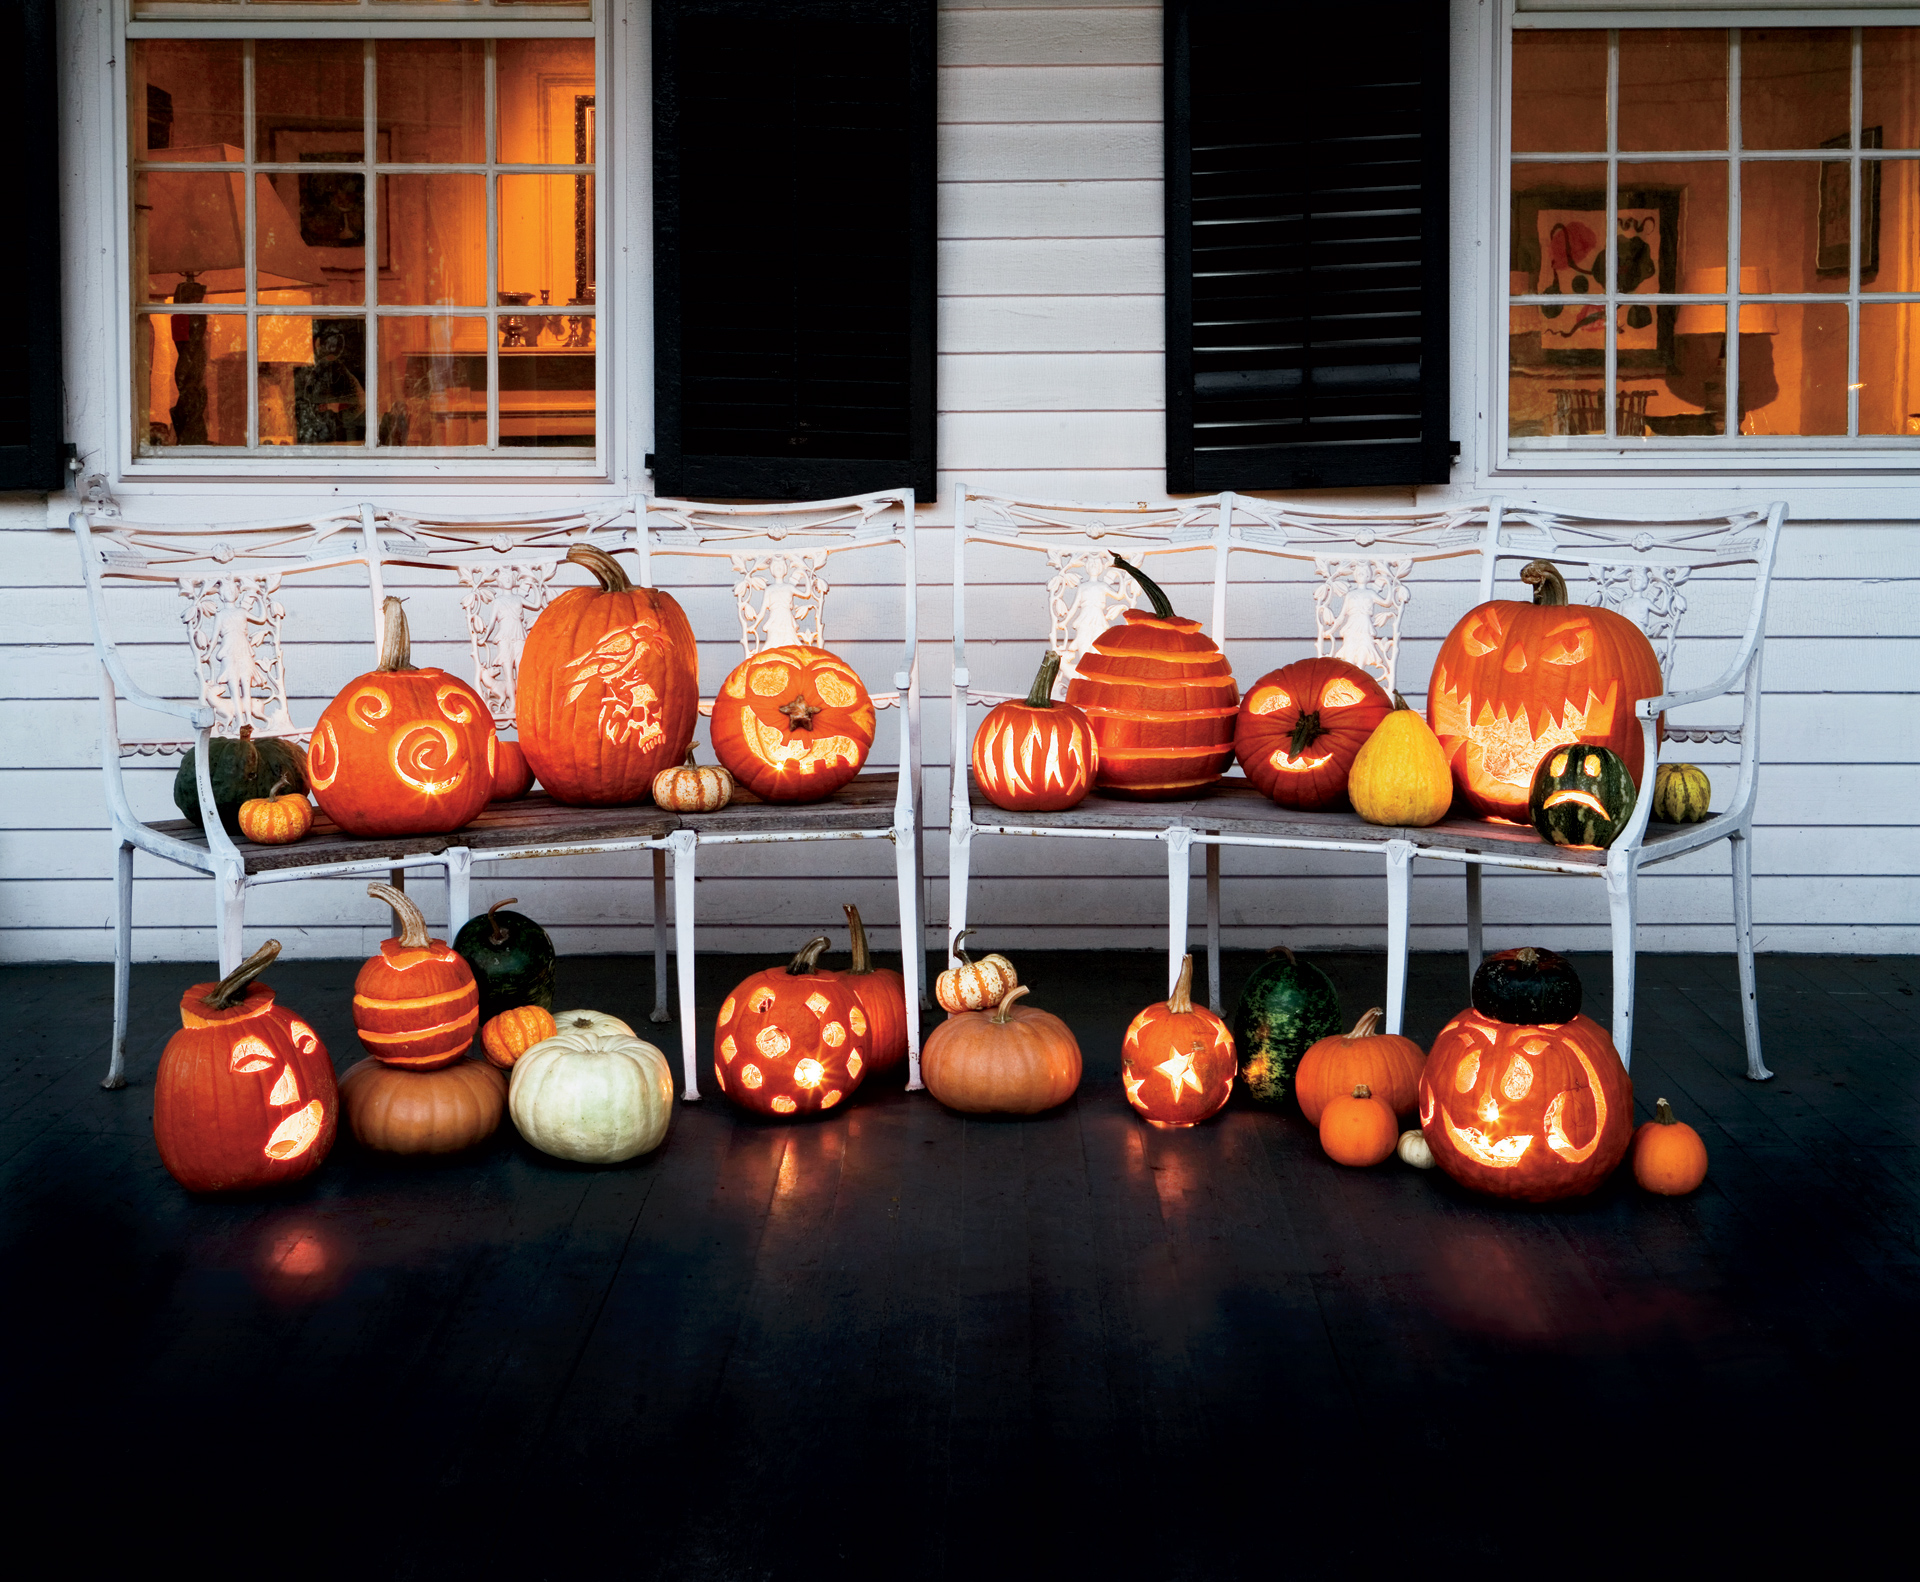 Living Room Pictures For Decorating 55 pumpkin designs we love for 2016 decorating ideas